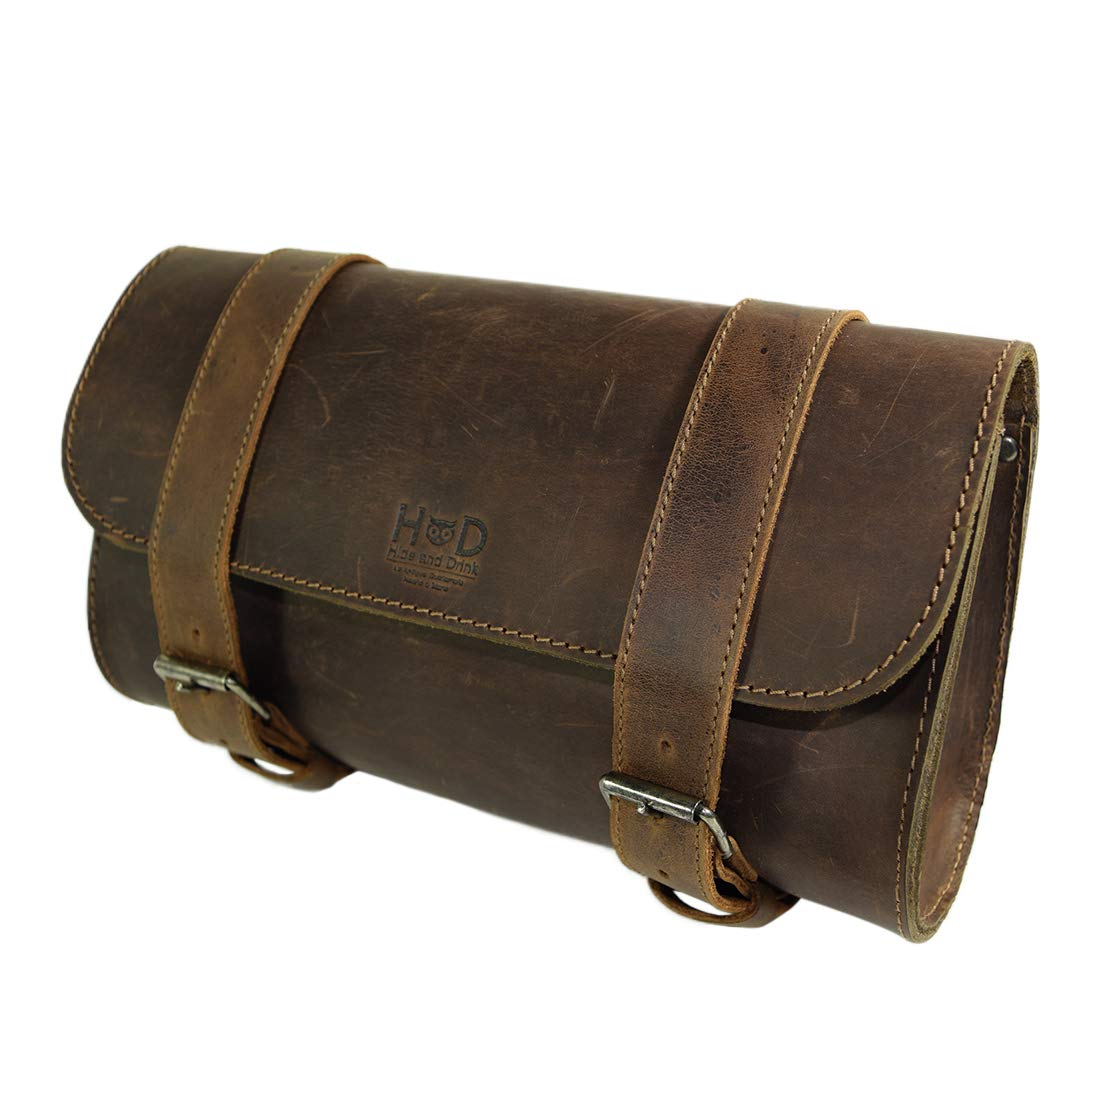 Hide & Drink, Thick Leather Motorcycle Handlebar Bag/Tool bag/Accessory Pouch/Saddle Bag, Handmade Includes 101 Year Warranty :: Bourbon Brown by Hide & Drink